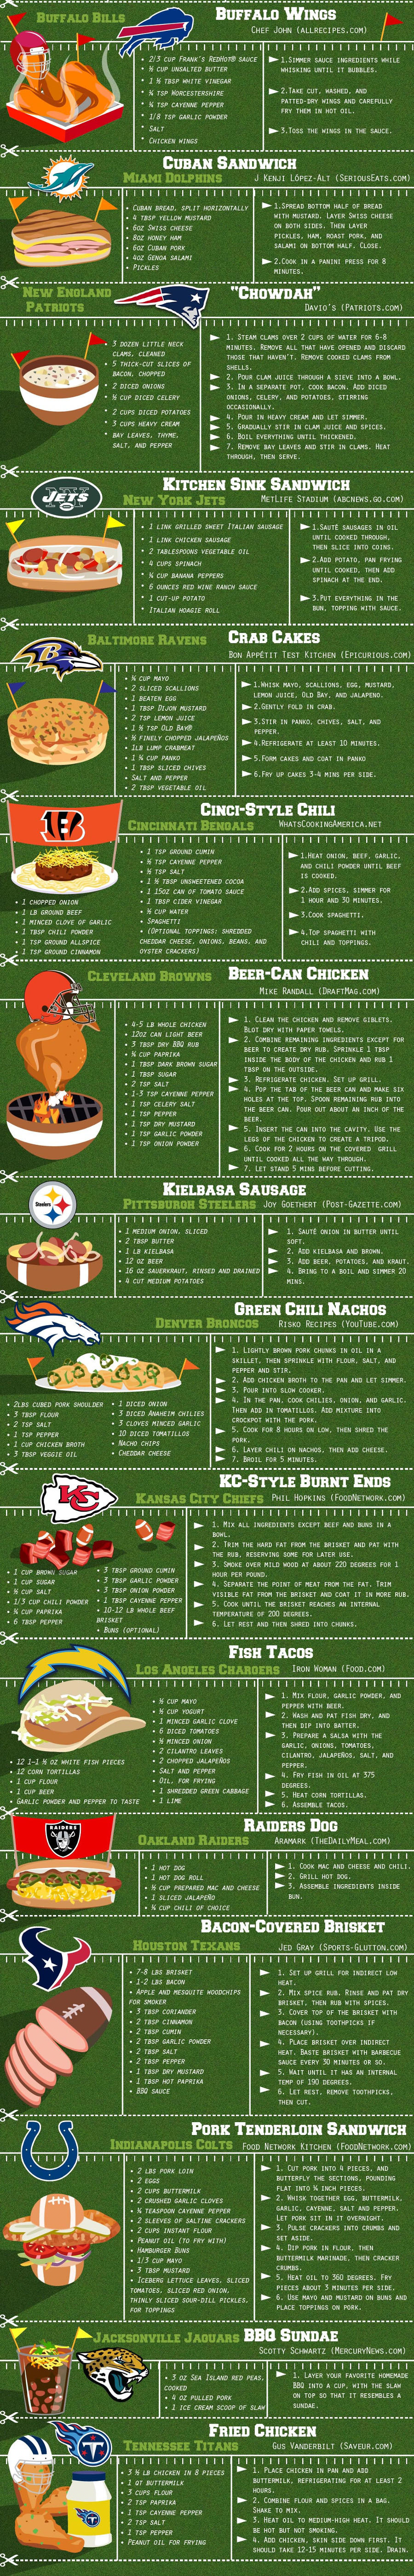 stadium journey pro football inspired cookbook recipes for home or the tailgate